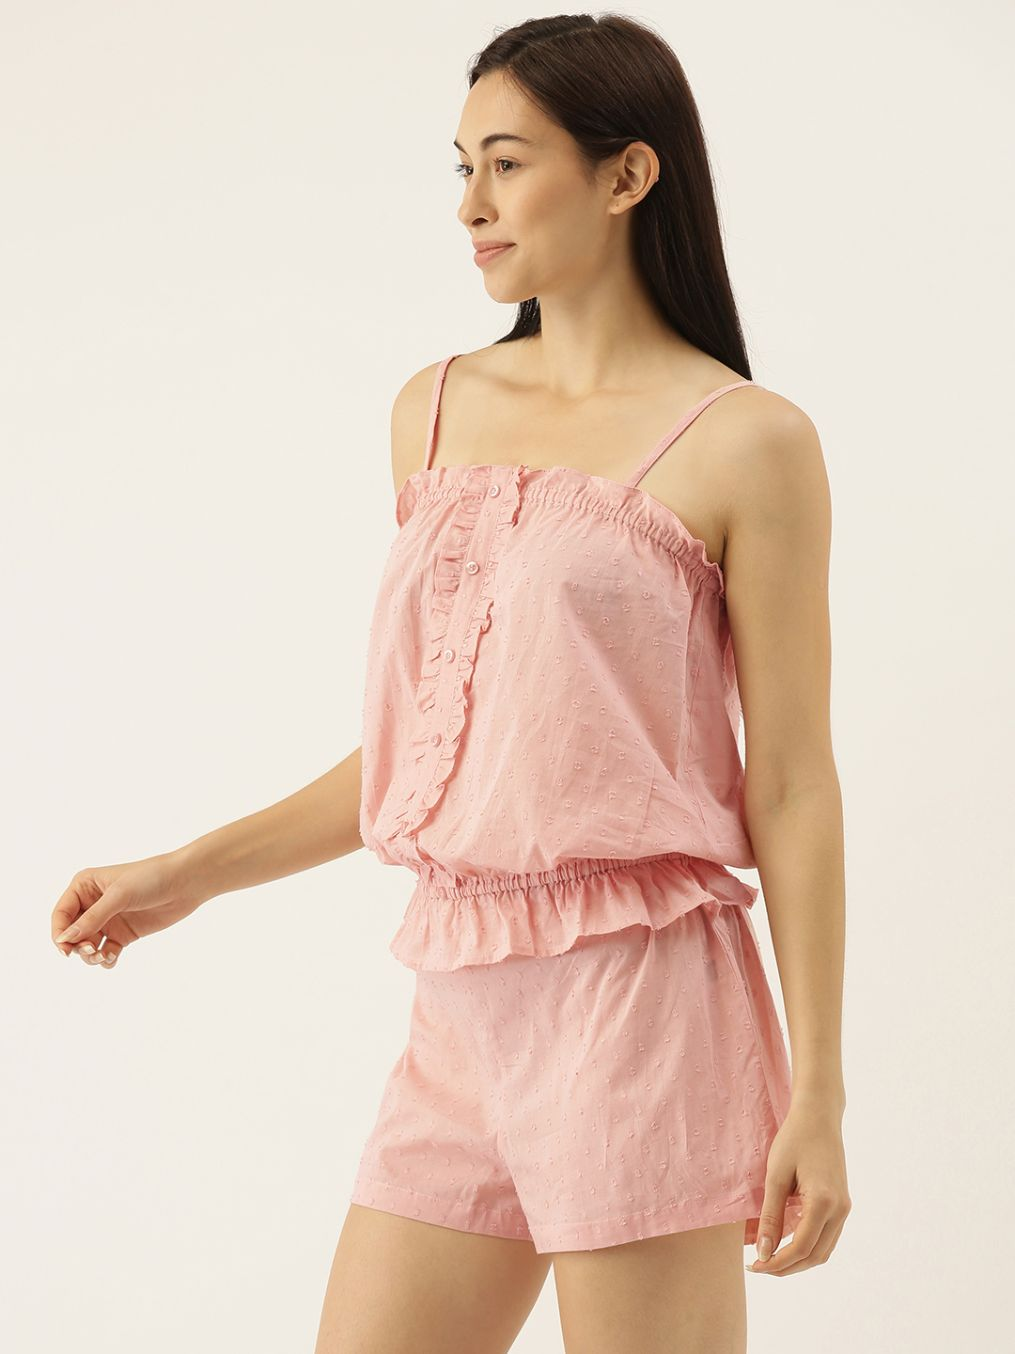 Cissy Rose Pink Dobby Self Design Spaghetti Top & Shorts Set